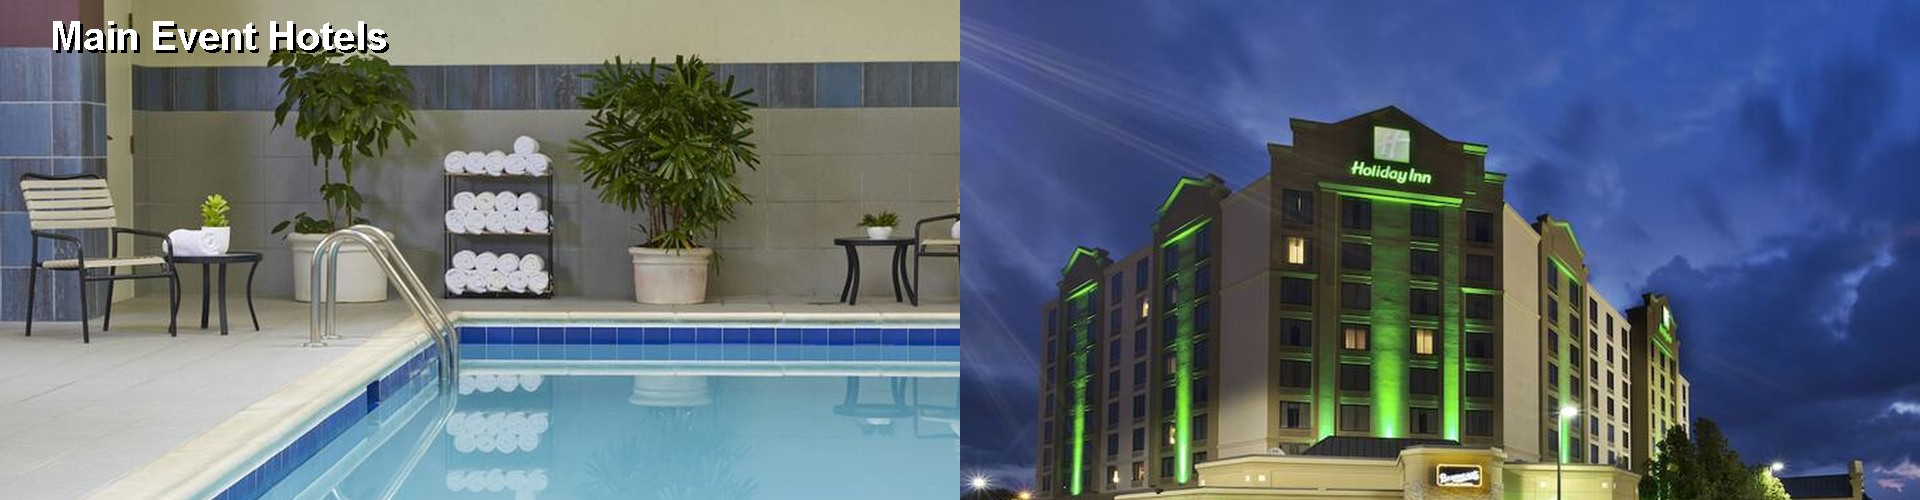 Hotels Near Main Event In Hoffman Estates Il